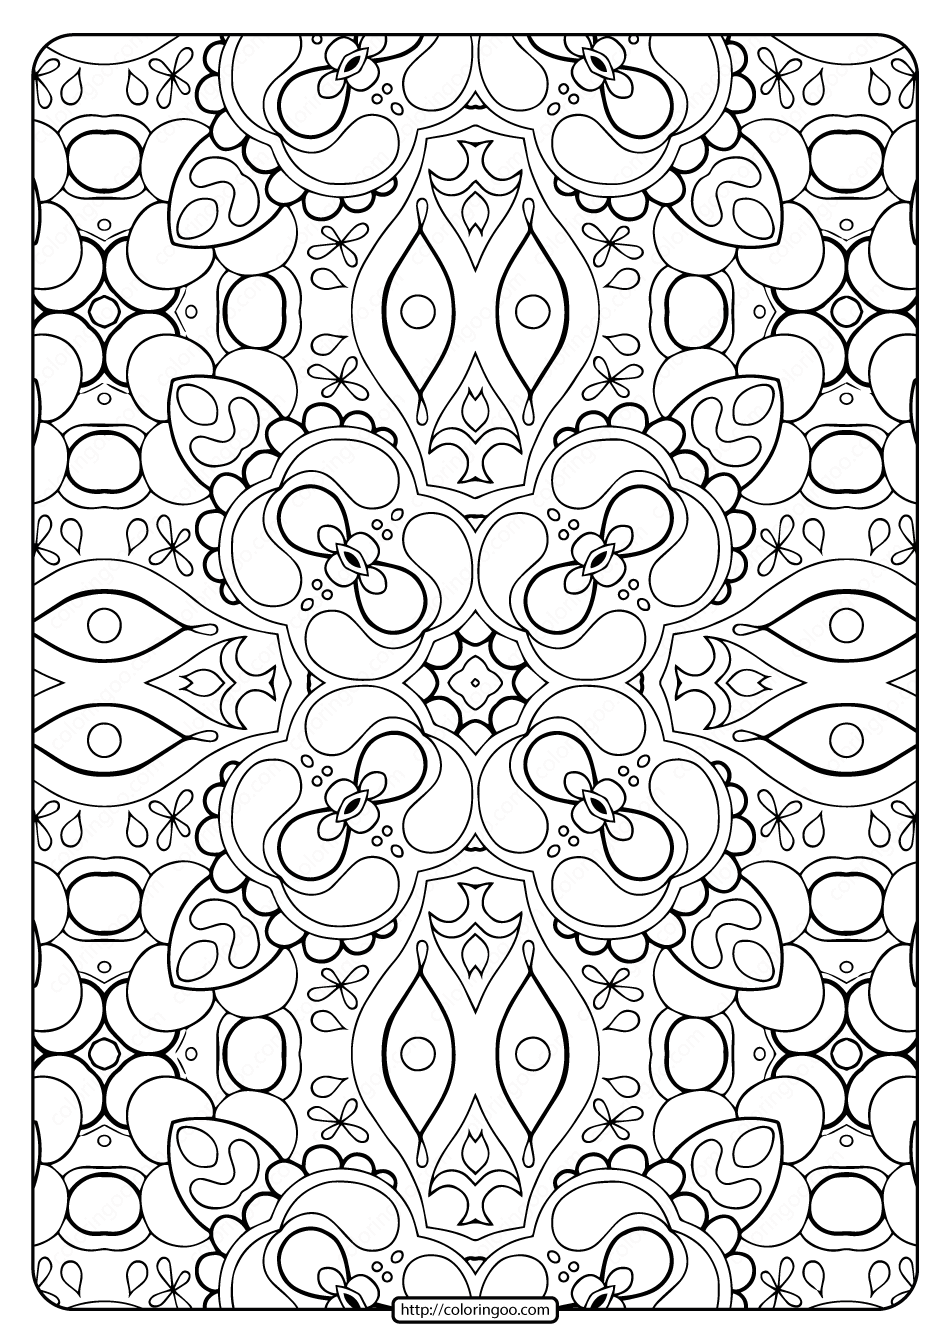 printable patterns to colour floral pattern coloring page free printable coloring pages patterns colour printable to